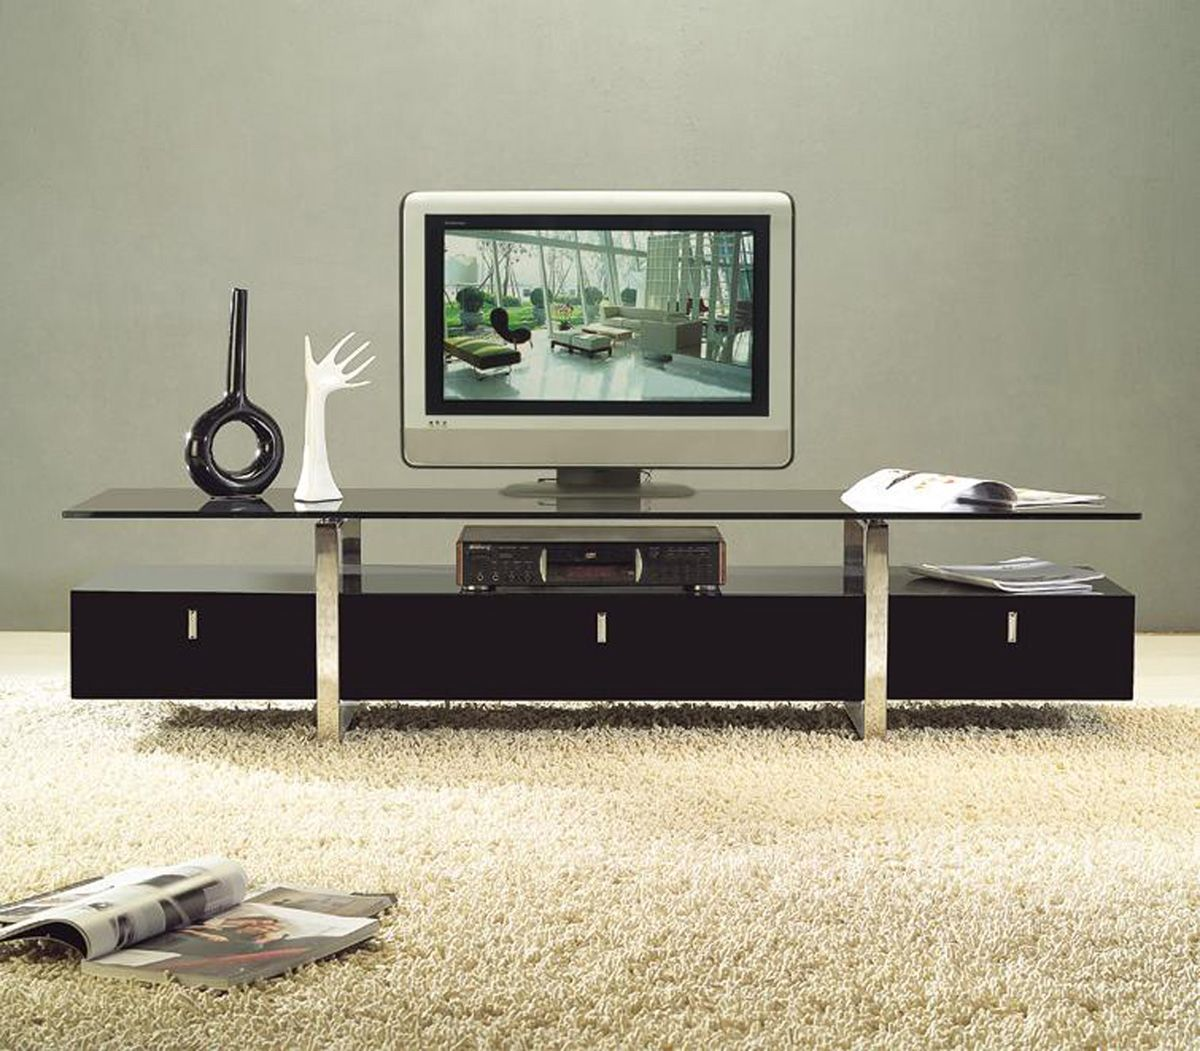 Flat screen tv entertainment centers swish flat lcd tv stands flat screen tv entertainment centers swish flat lcd tv stands and striking entertainment centers sciox Image collections